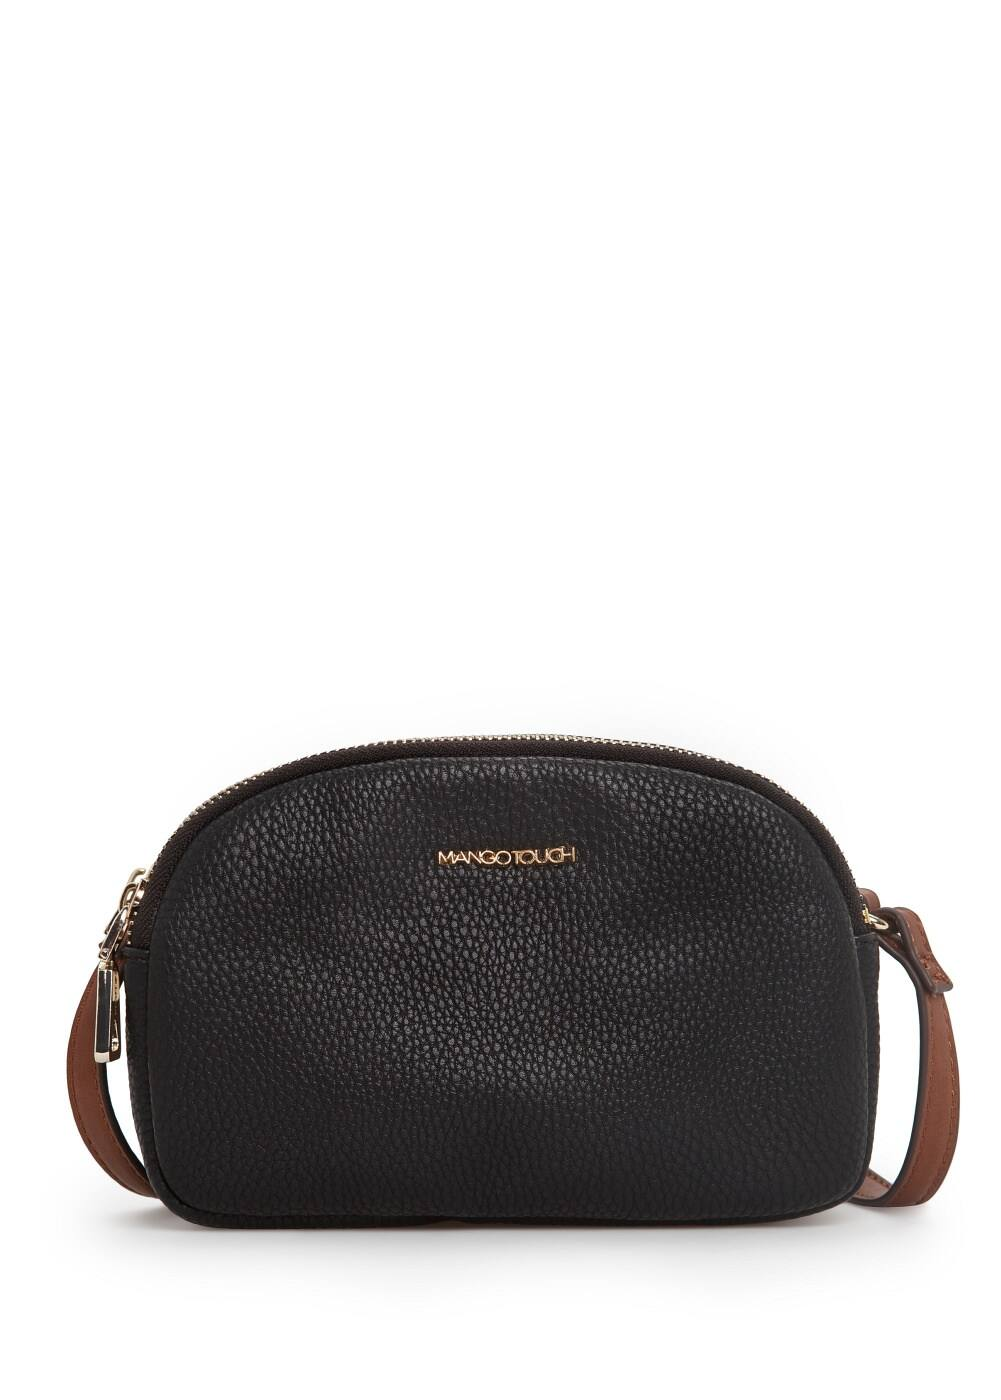 Mini bolso doble compartimento